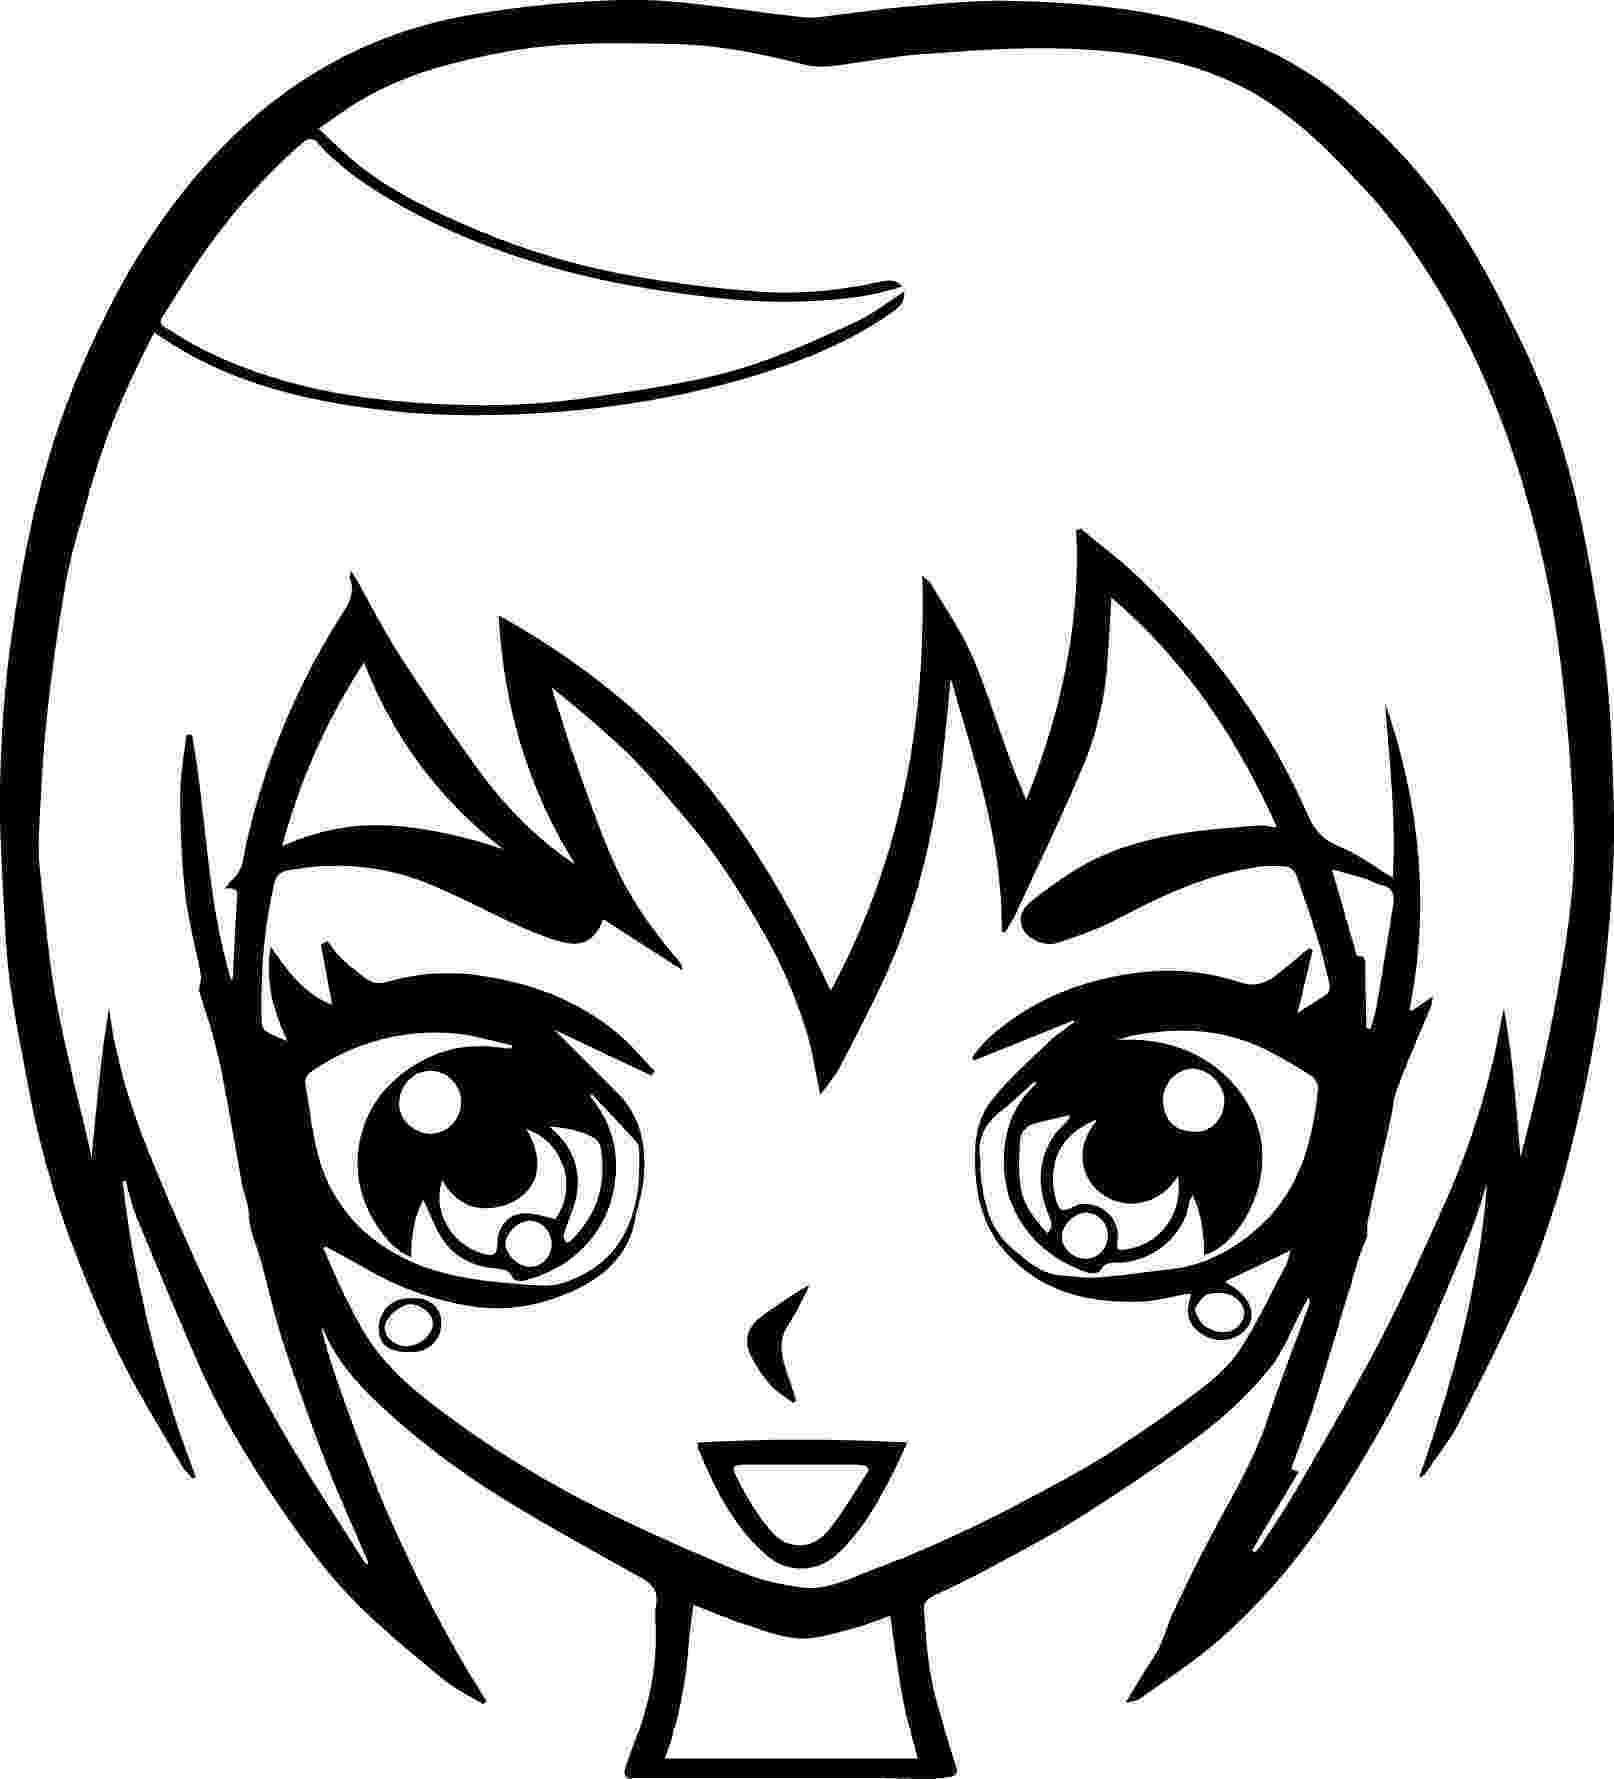 hairstyle coloring pages hairstyle with volume coloring page coloringcrewcom hairstyle pages coloring